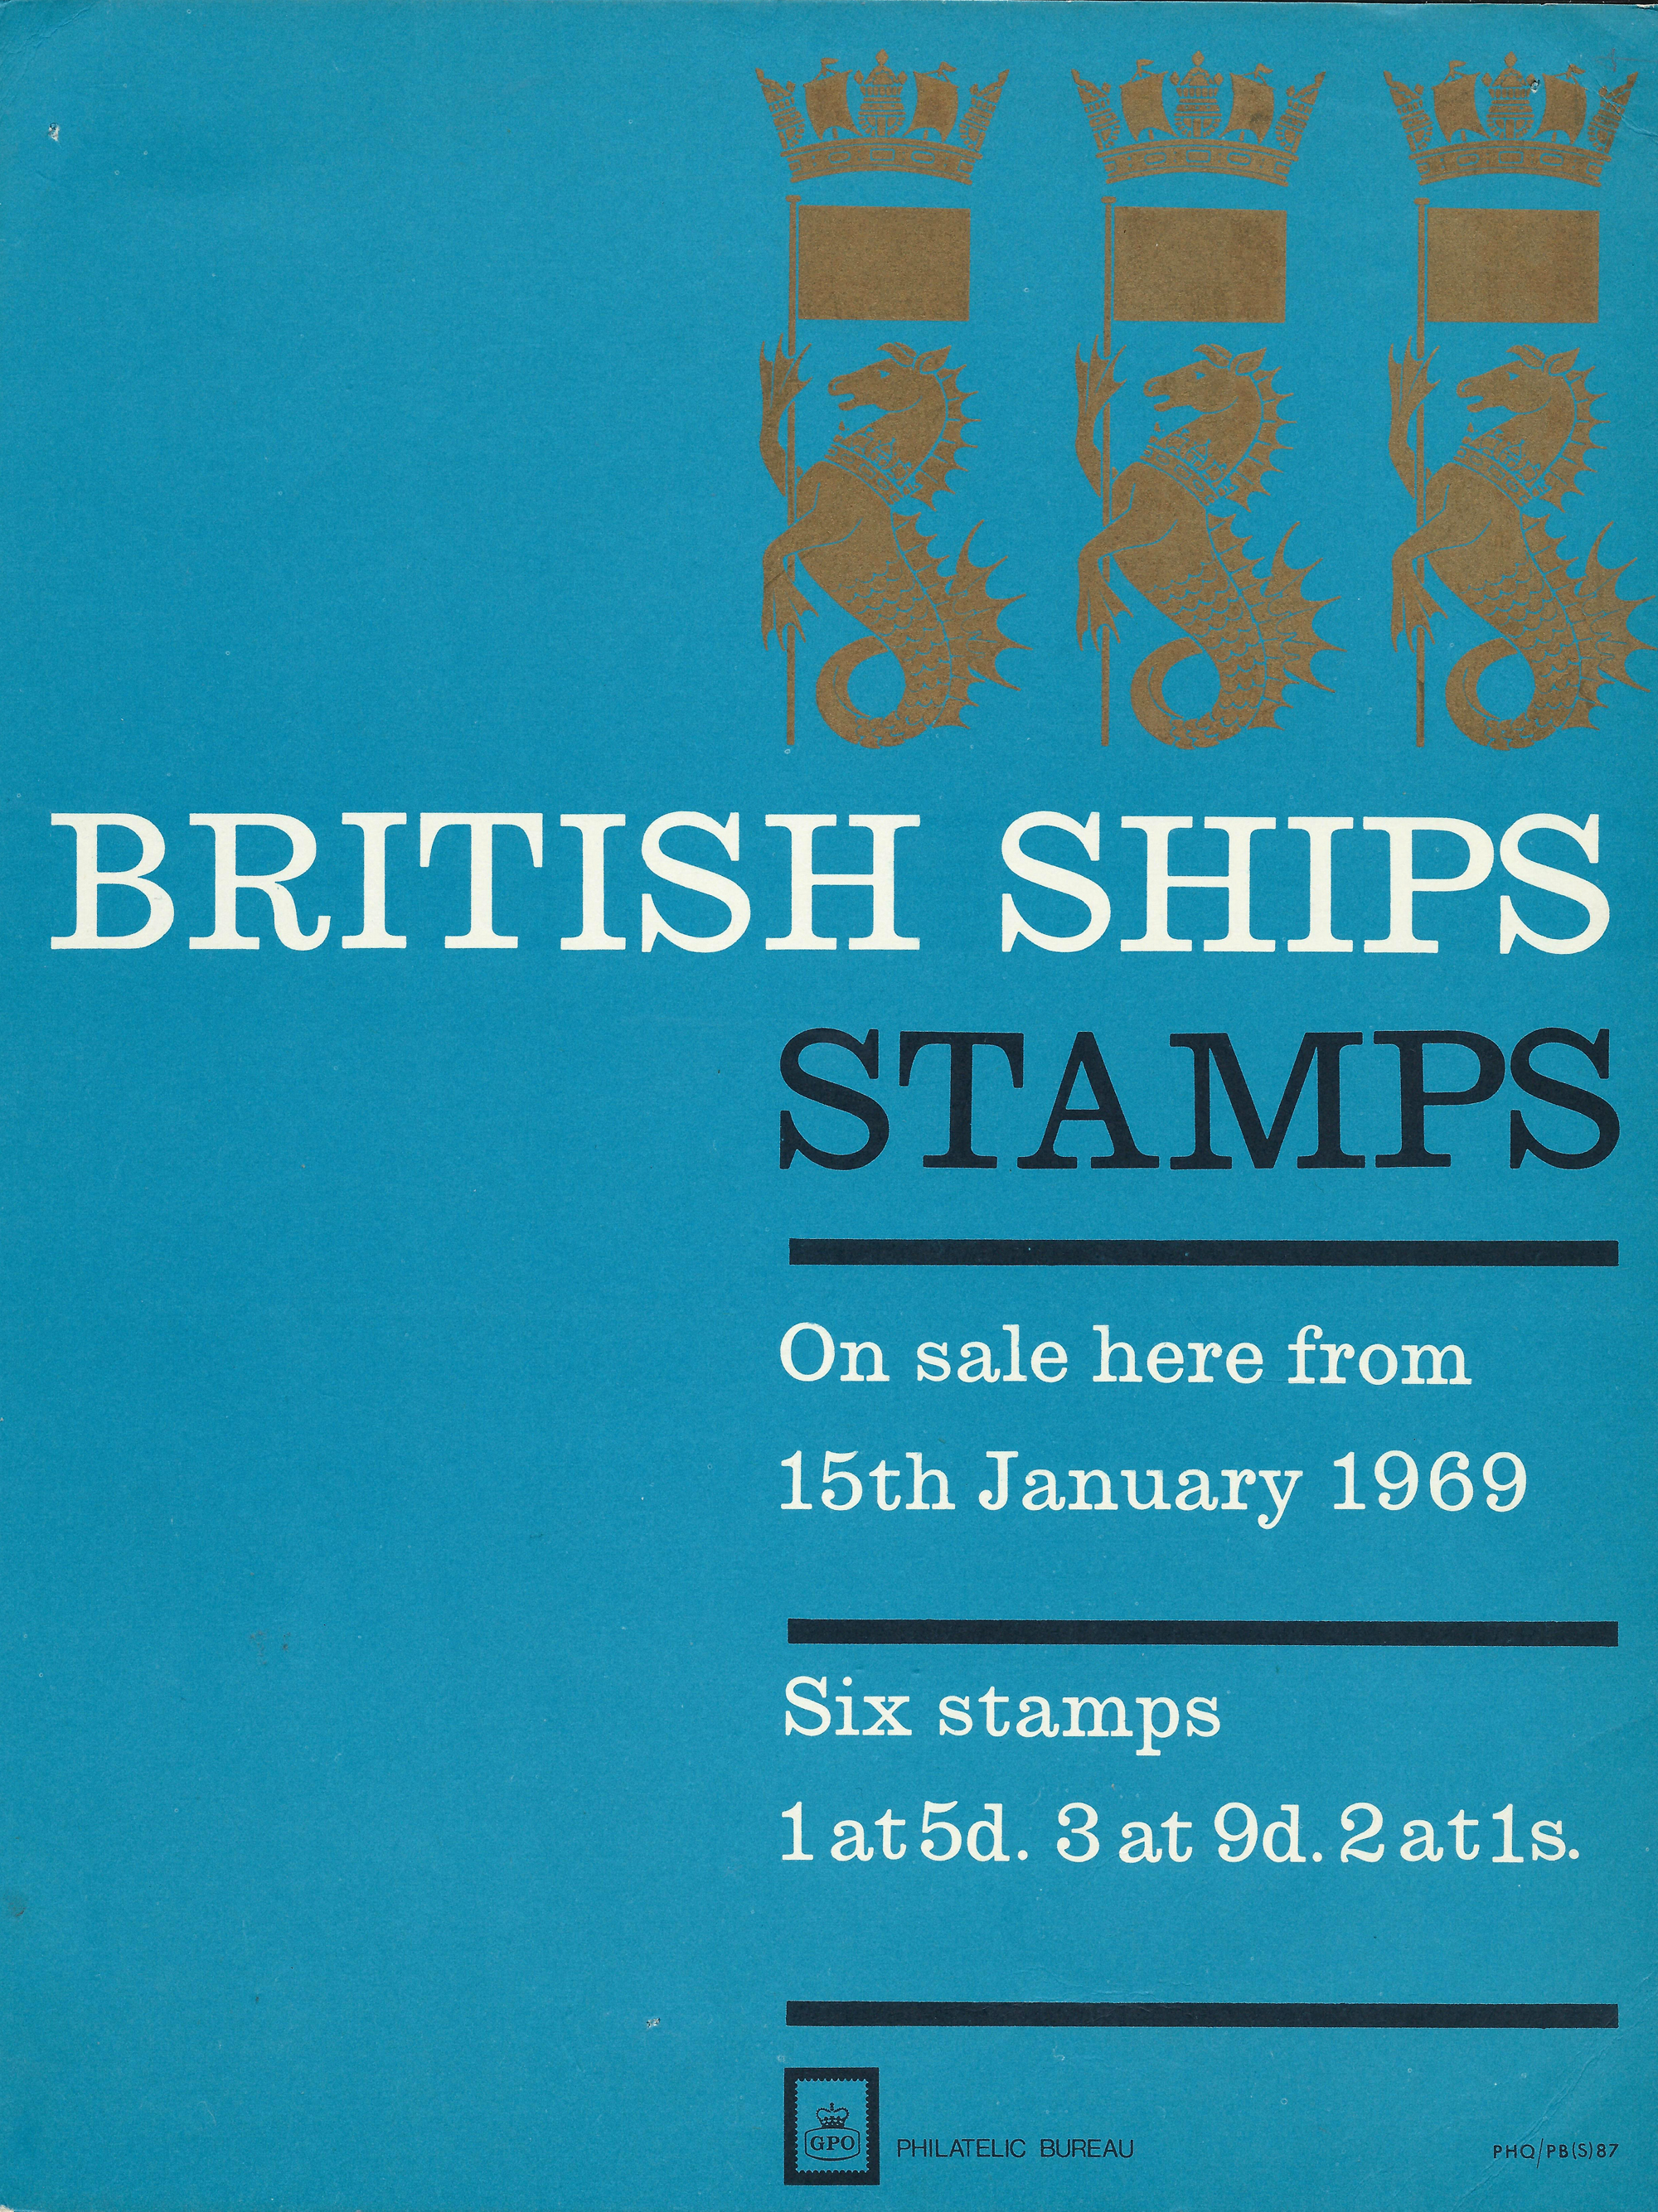 British Ships stamp set poster, 1968